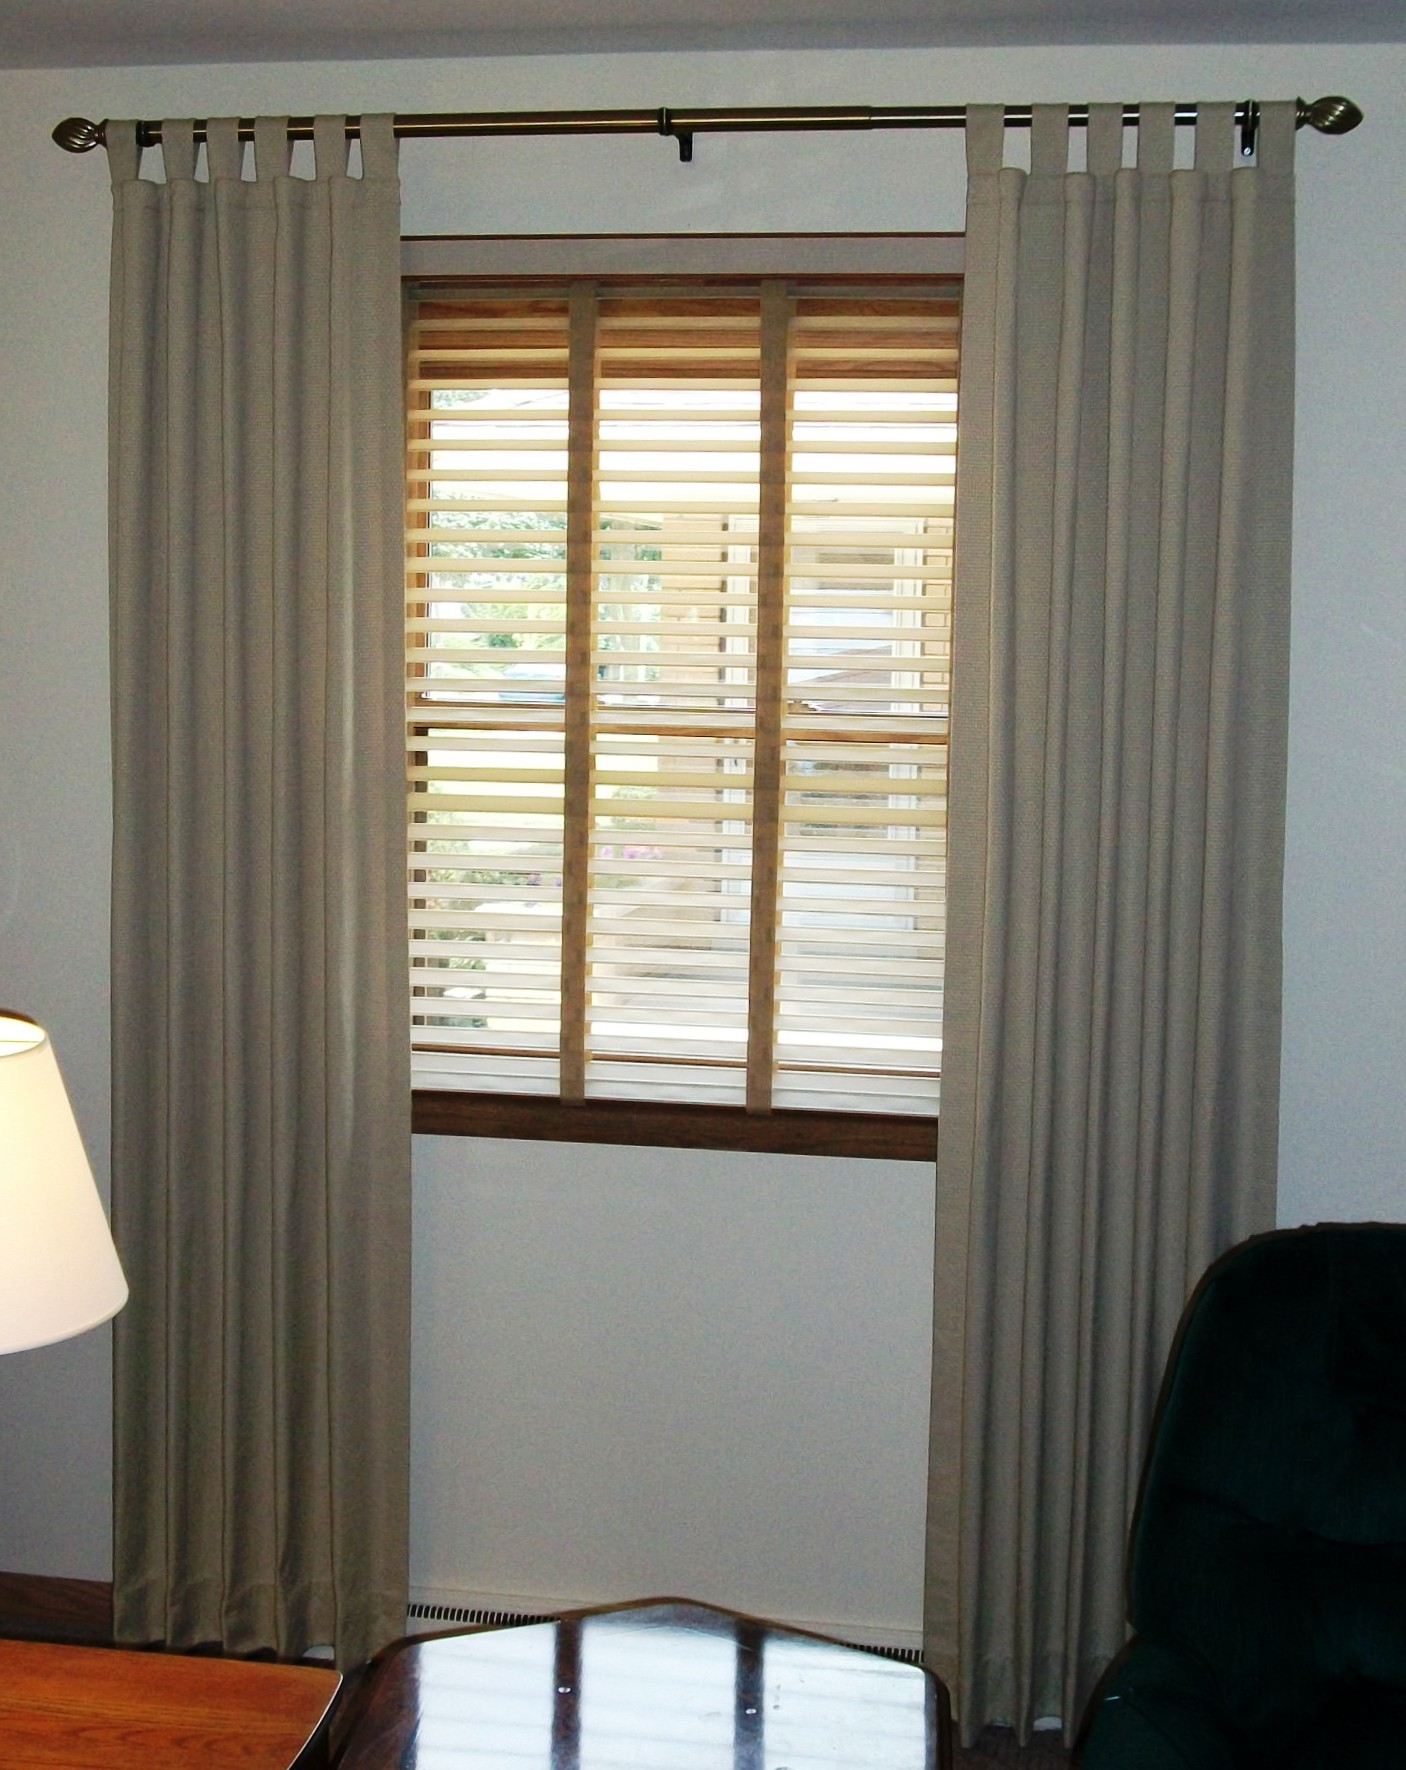 Budget Blinds Of Mequon Mequon Wi 53092 Angies List